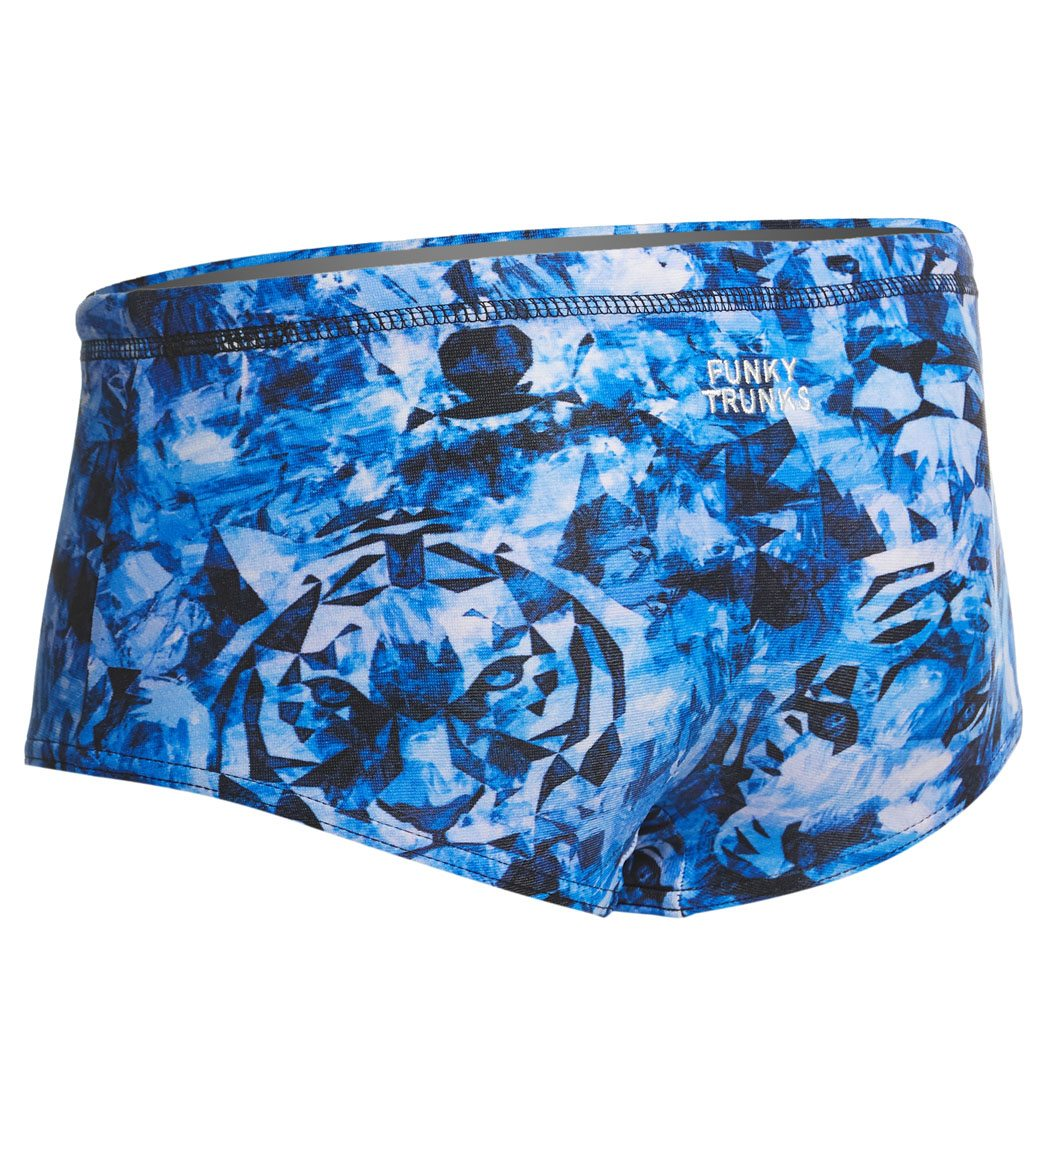 6415ca4f87 Funky Trunks Toddler Boy's Predator Freeze Square Leg Swimsuit at  SwimOutlet.com